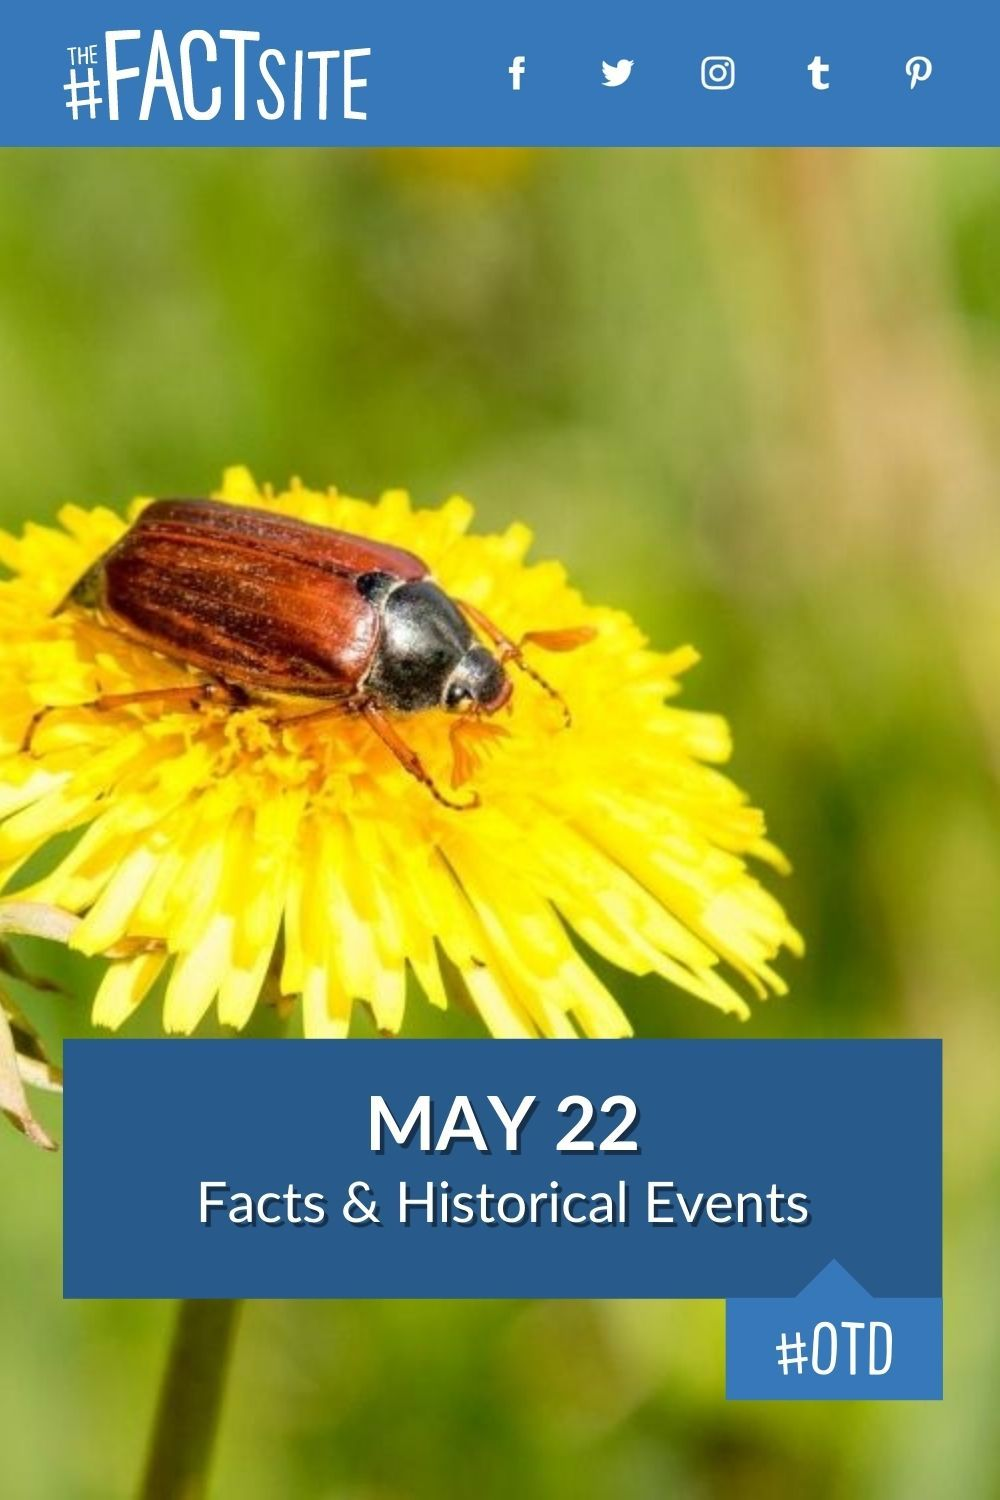 Facts & Historic Events That Happened on May 22